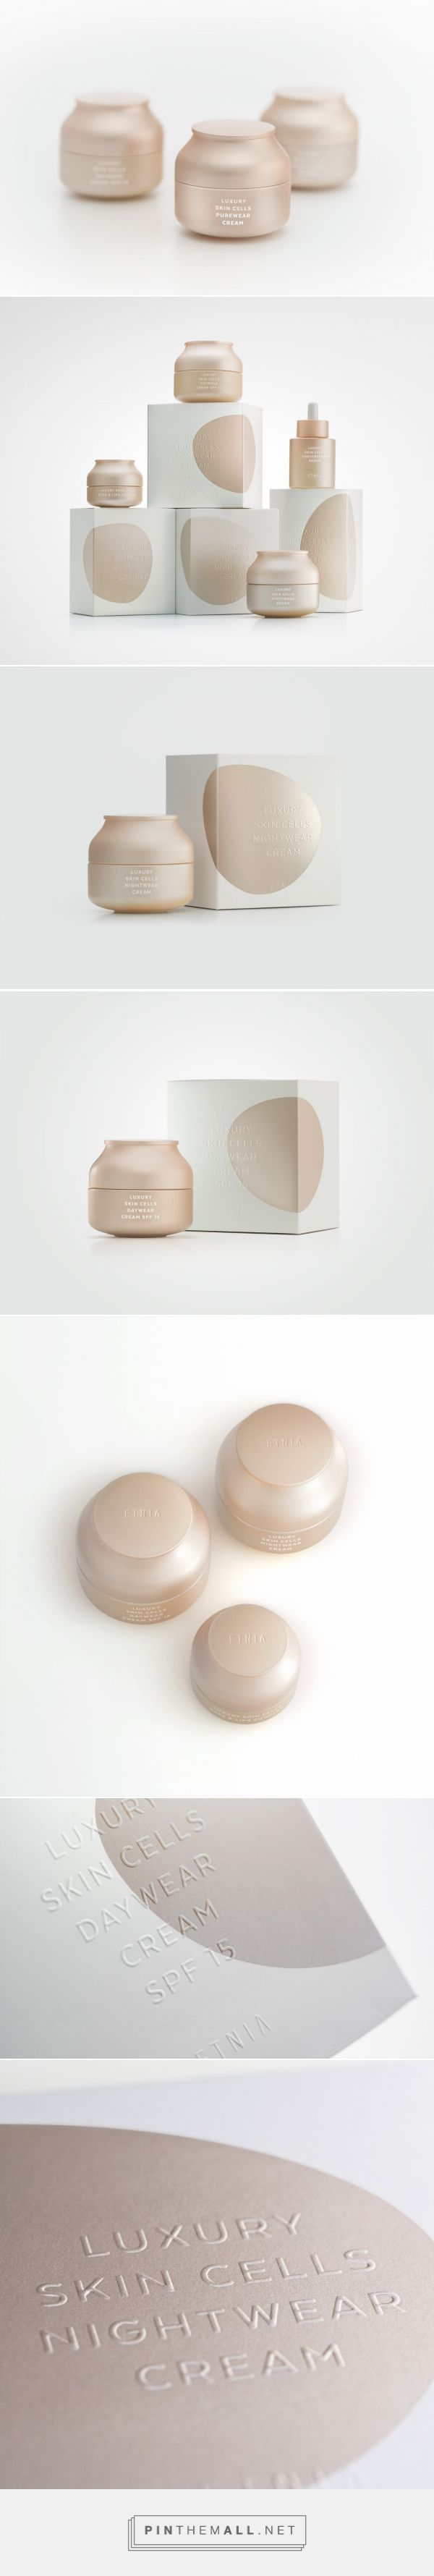 Luxury Skin Cells #packaging #design by Lavernia & Cienfuegos - http://www.packagingoftheworld.com/2017/06/luxury-skin-cells.html